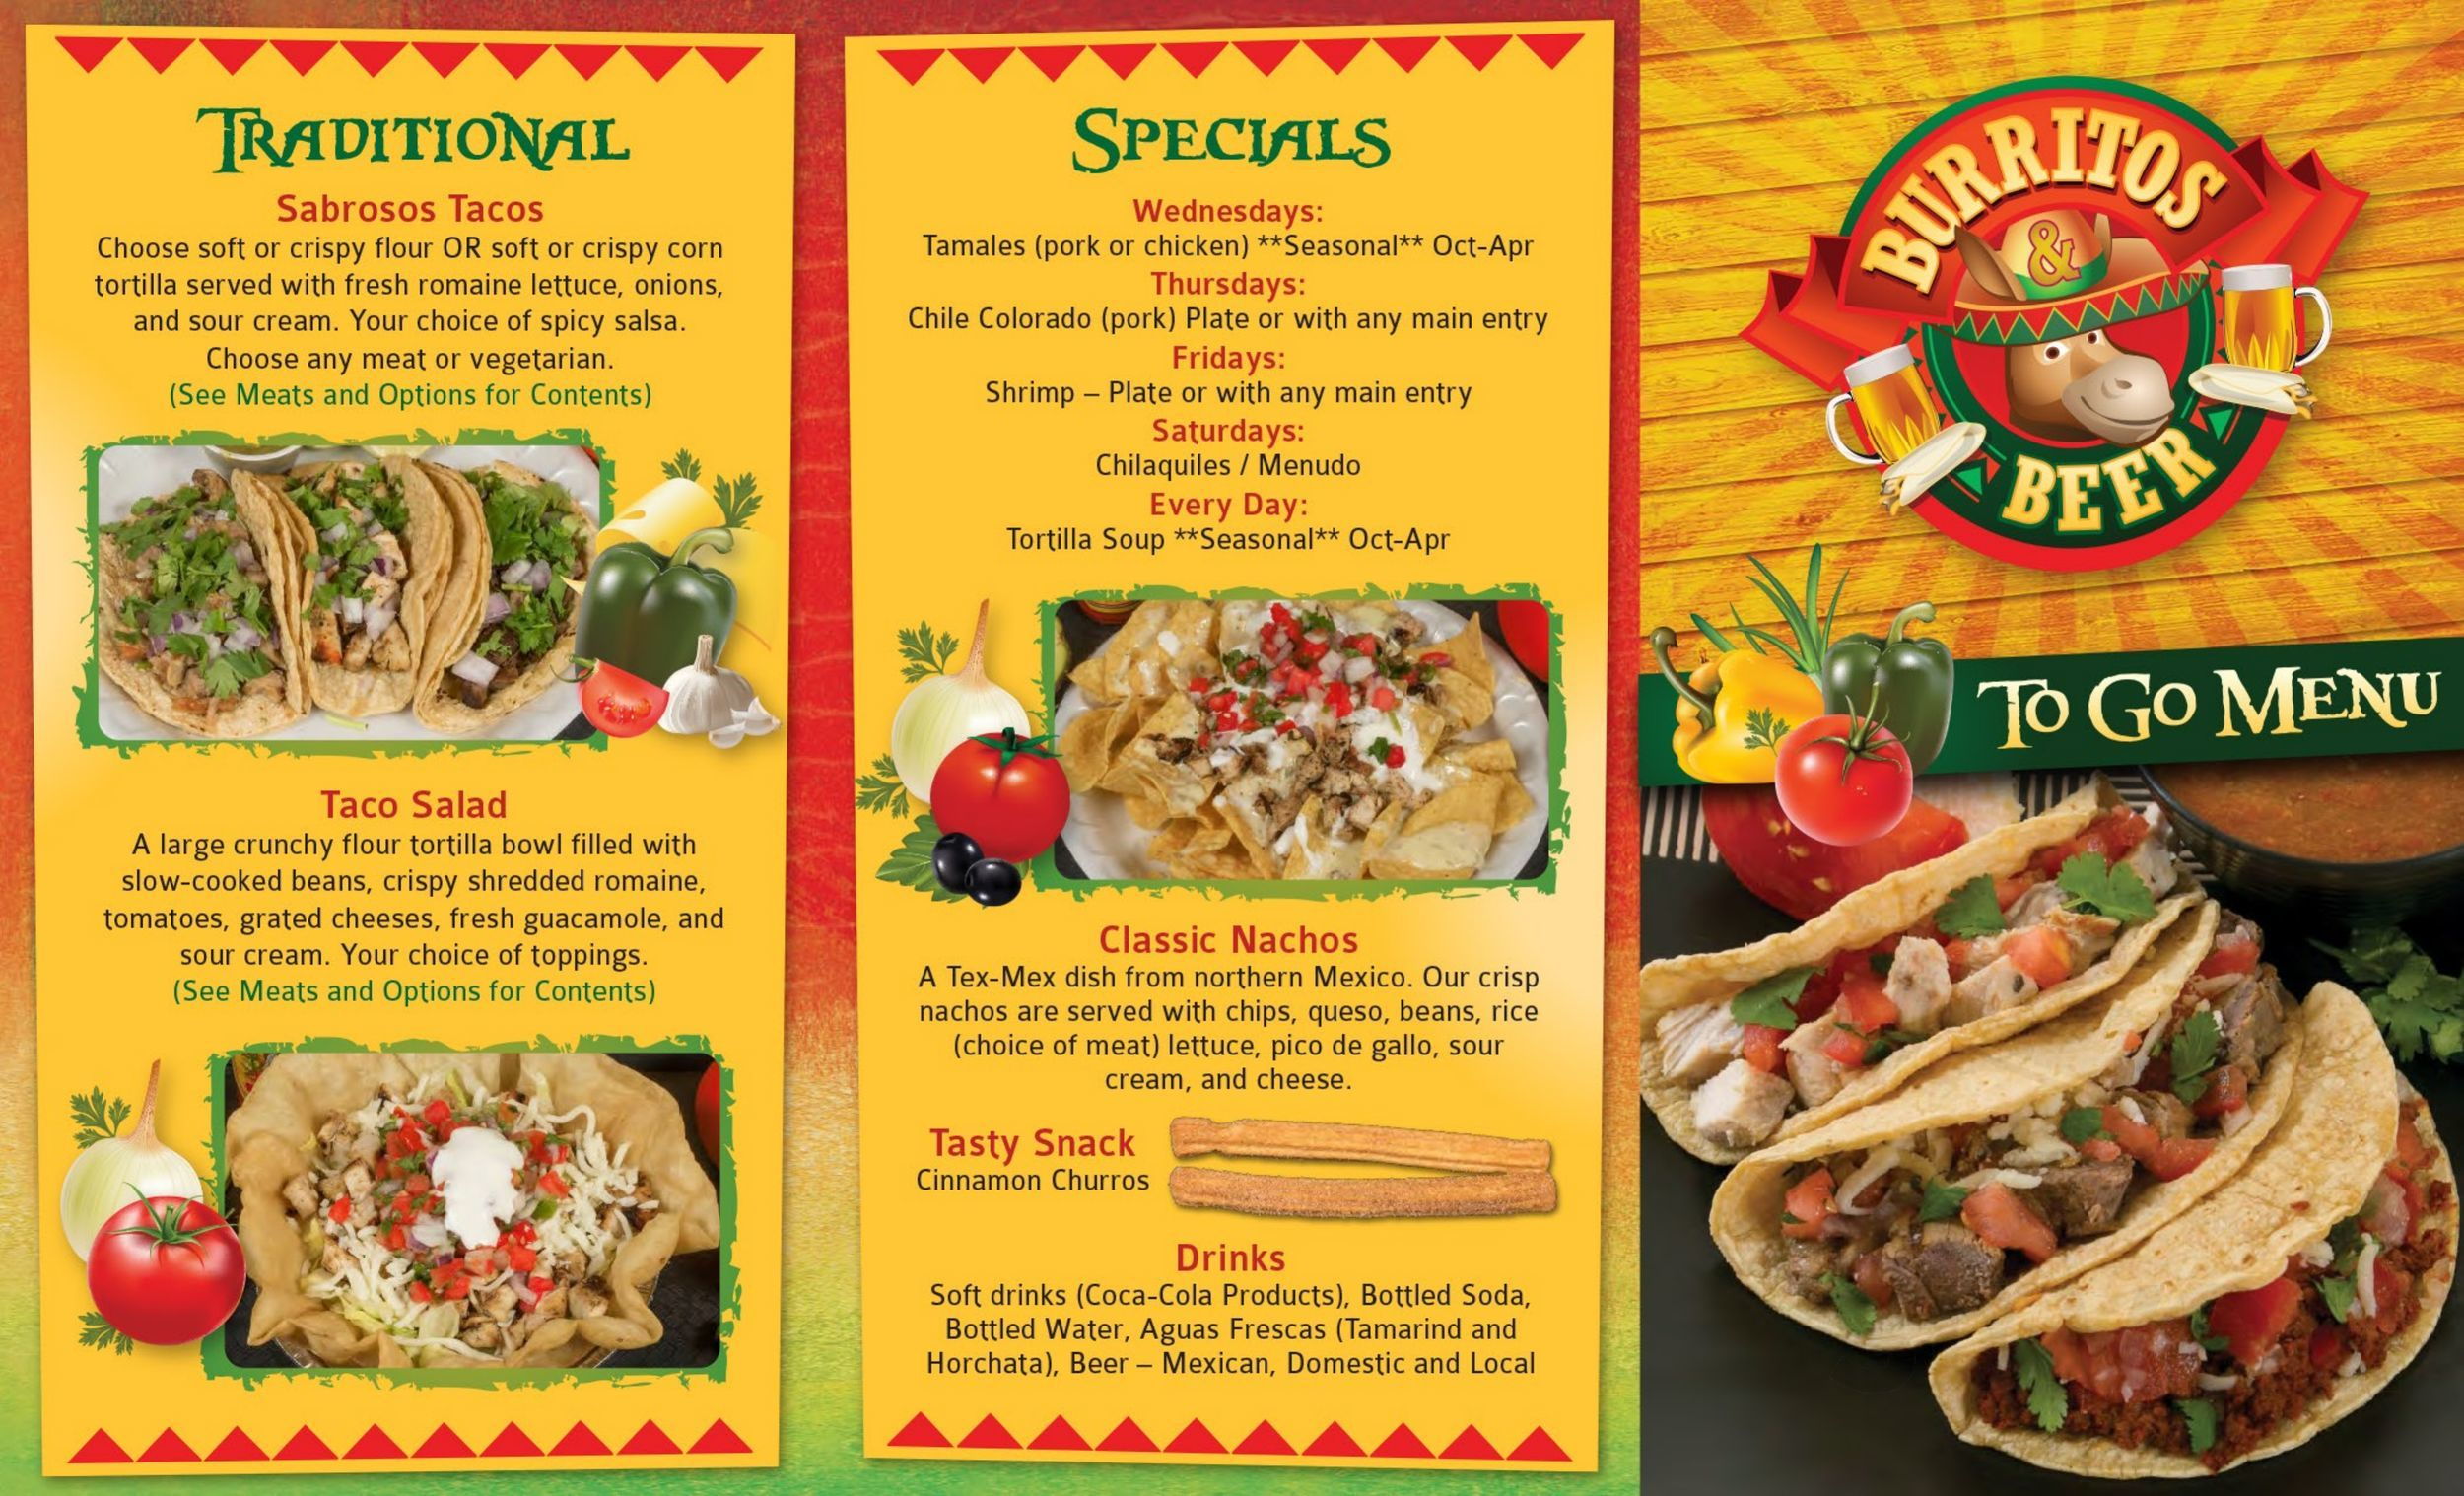 Burritos Beer Restaurant Llc Menu In Fishers Indiana